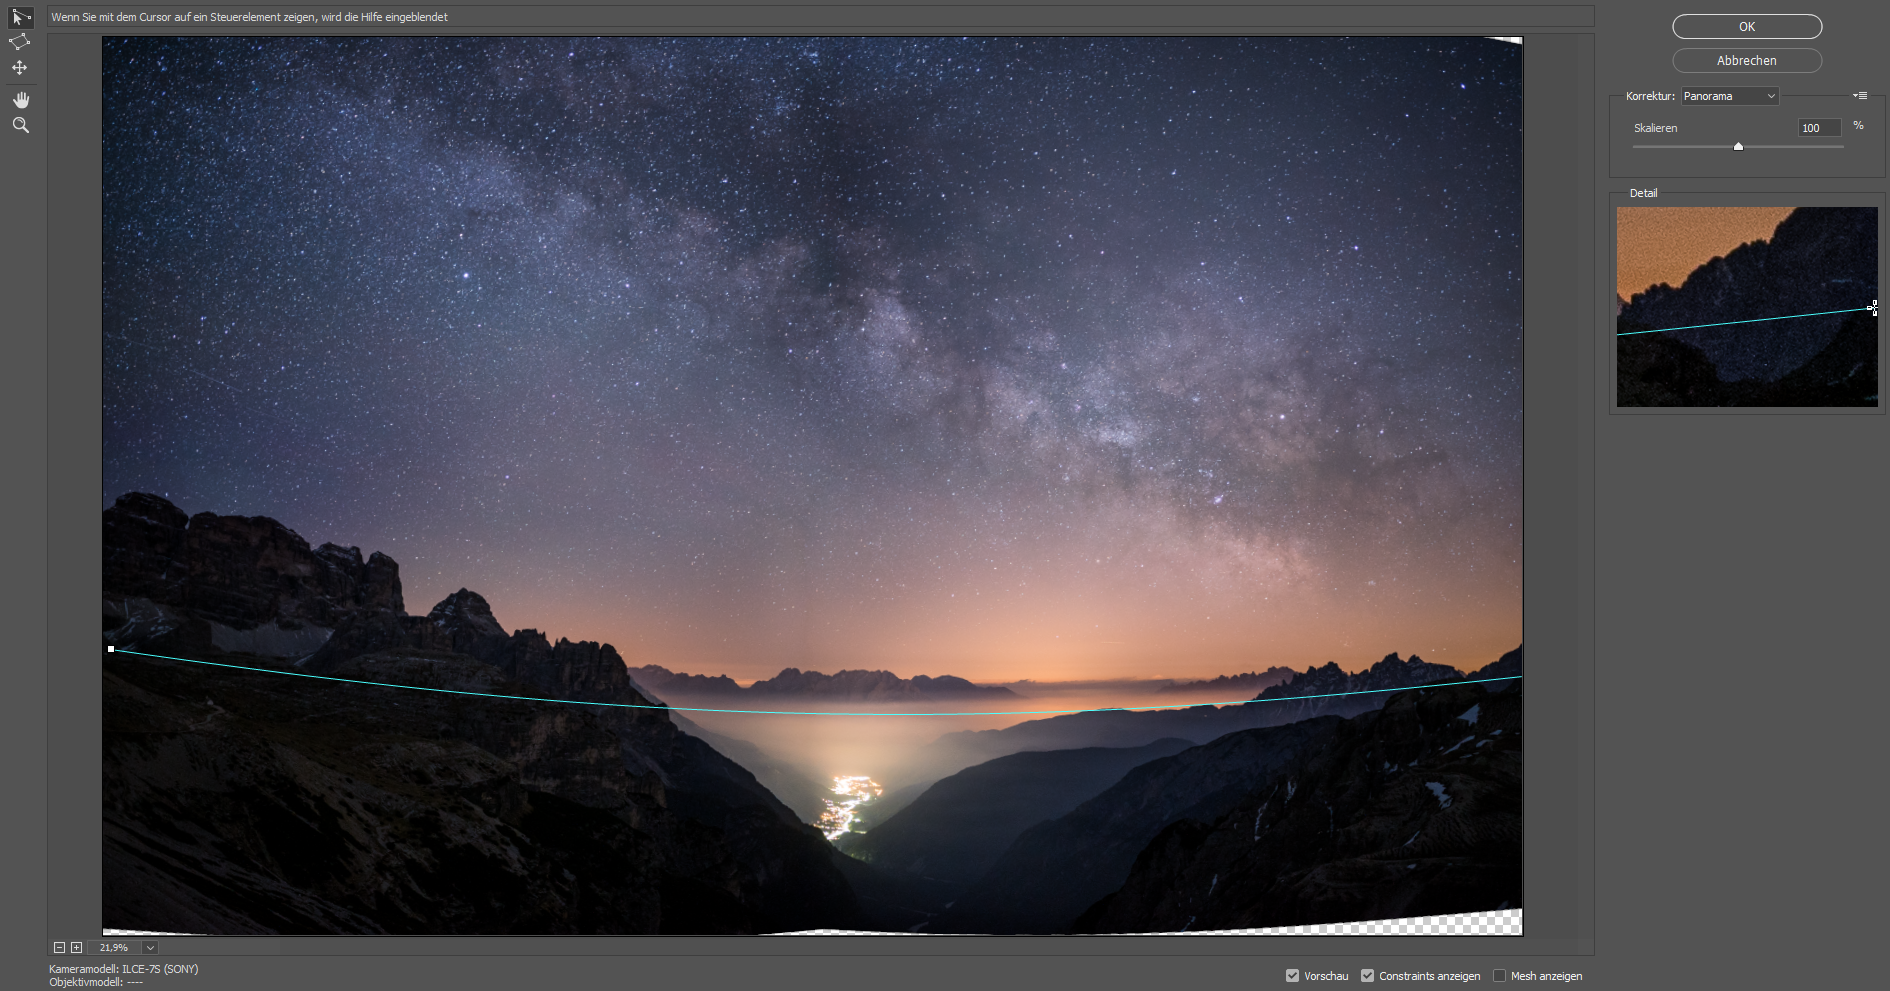 milky way astro astrophotography twan dark night stars milchstraße valley dolomites italy sony a7s voigtlander 35mm 1,7 asph ultron